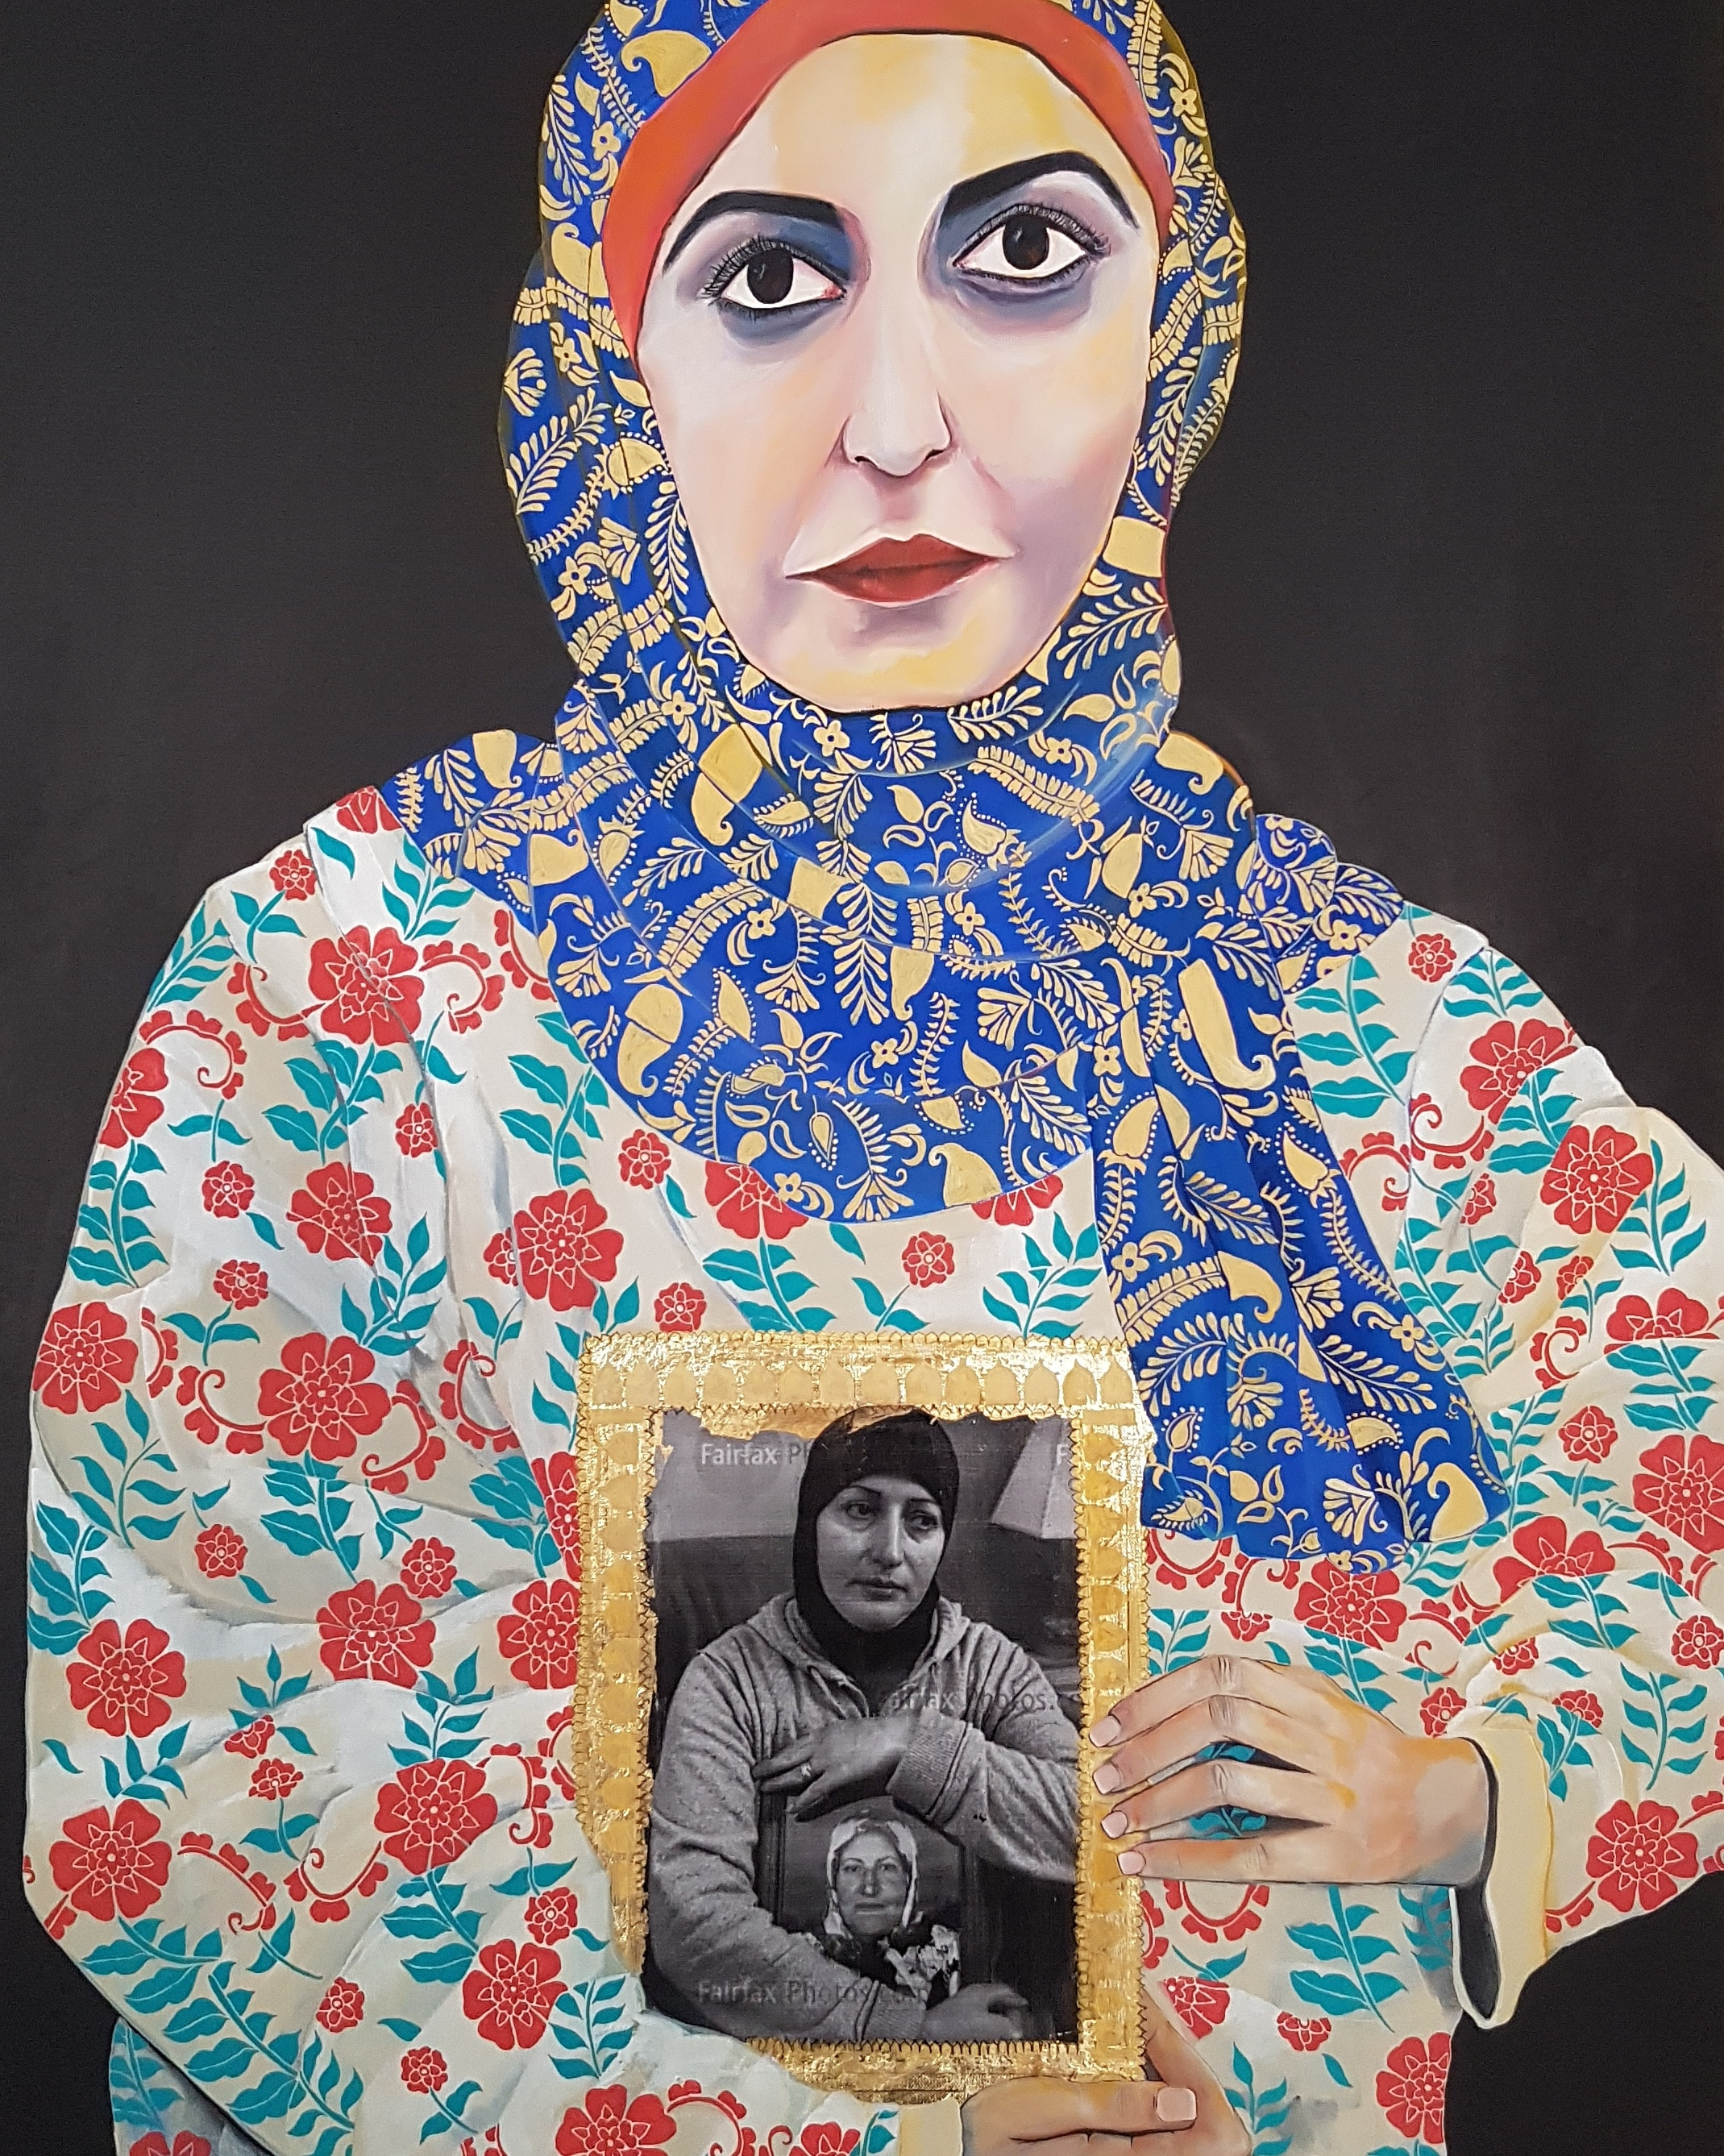 Finalist in the 2018 Archibald Prize. Currently on Display at Fairfield City Museum and Gallery